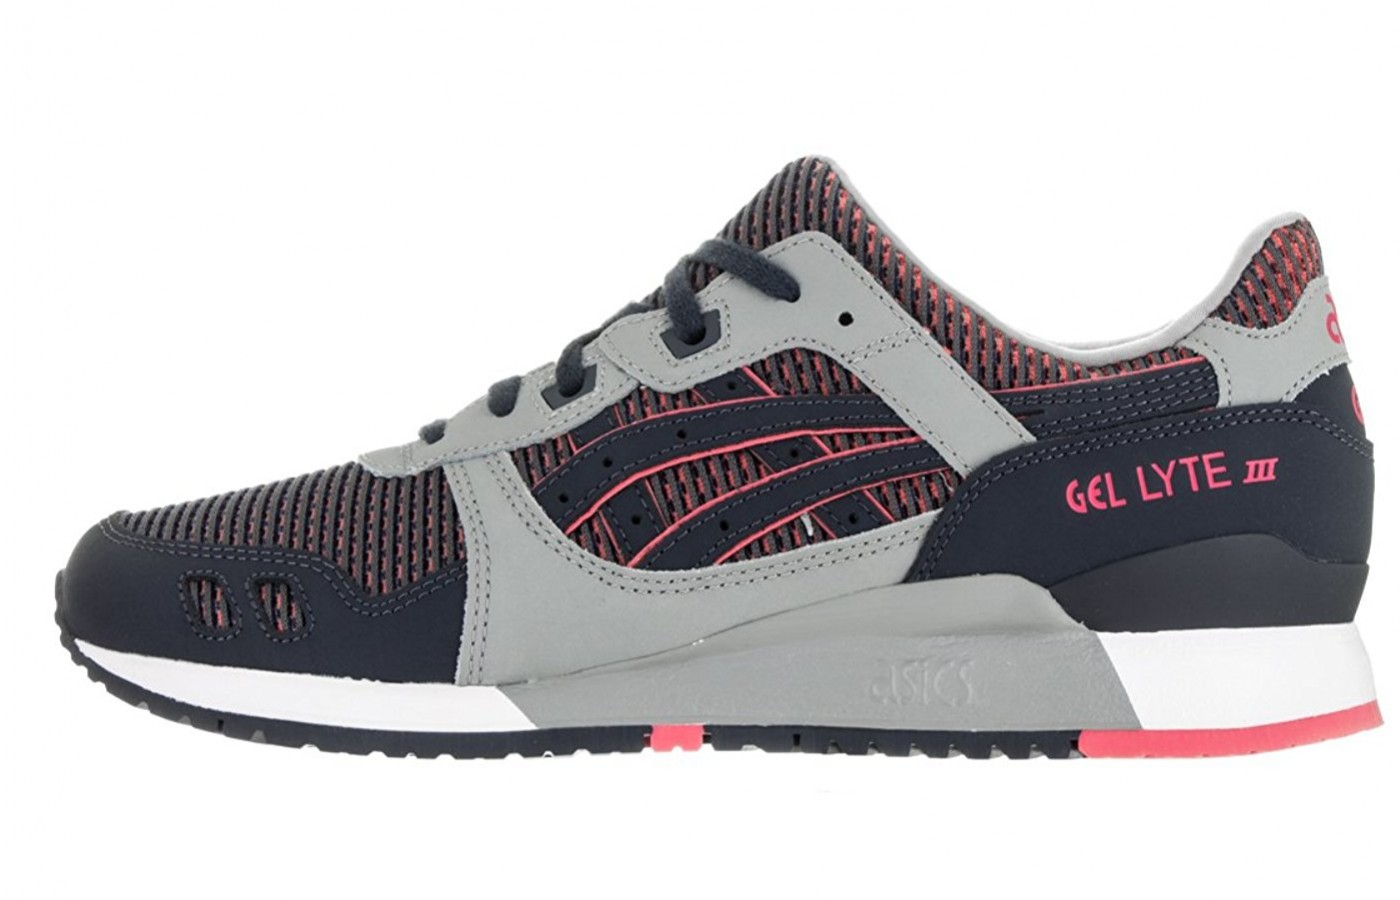 right to left view of the asics gel lyte III